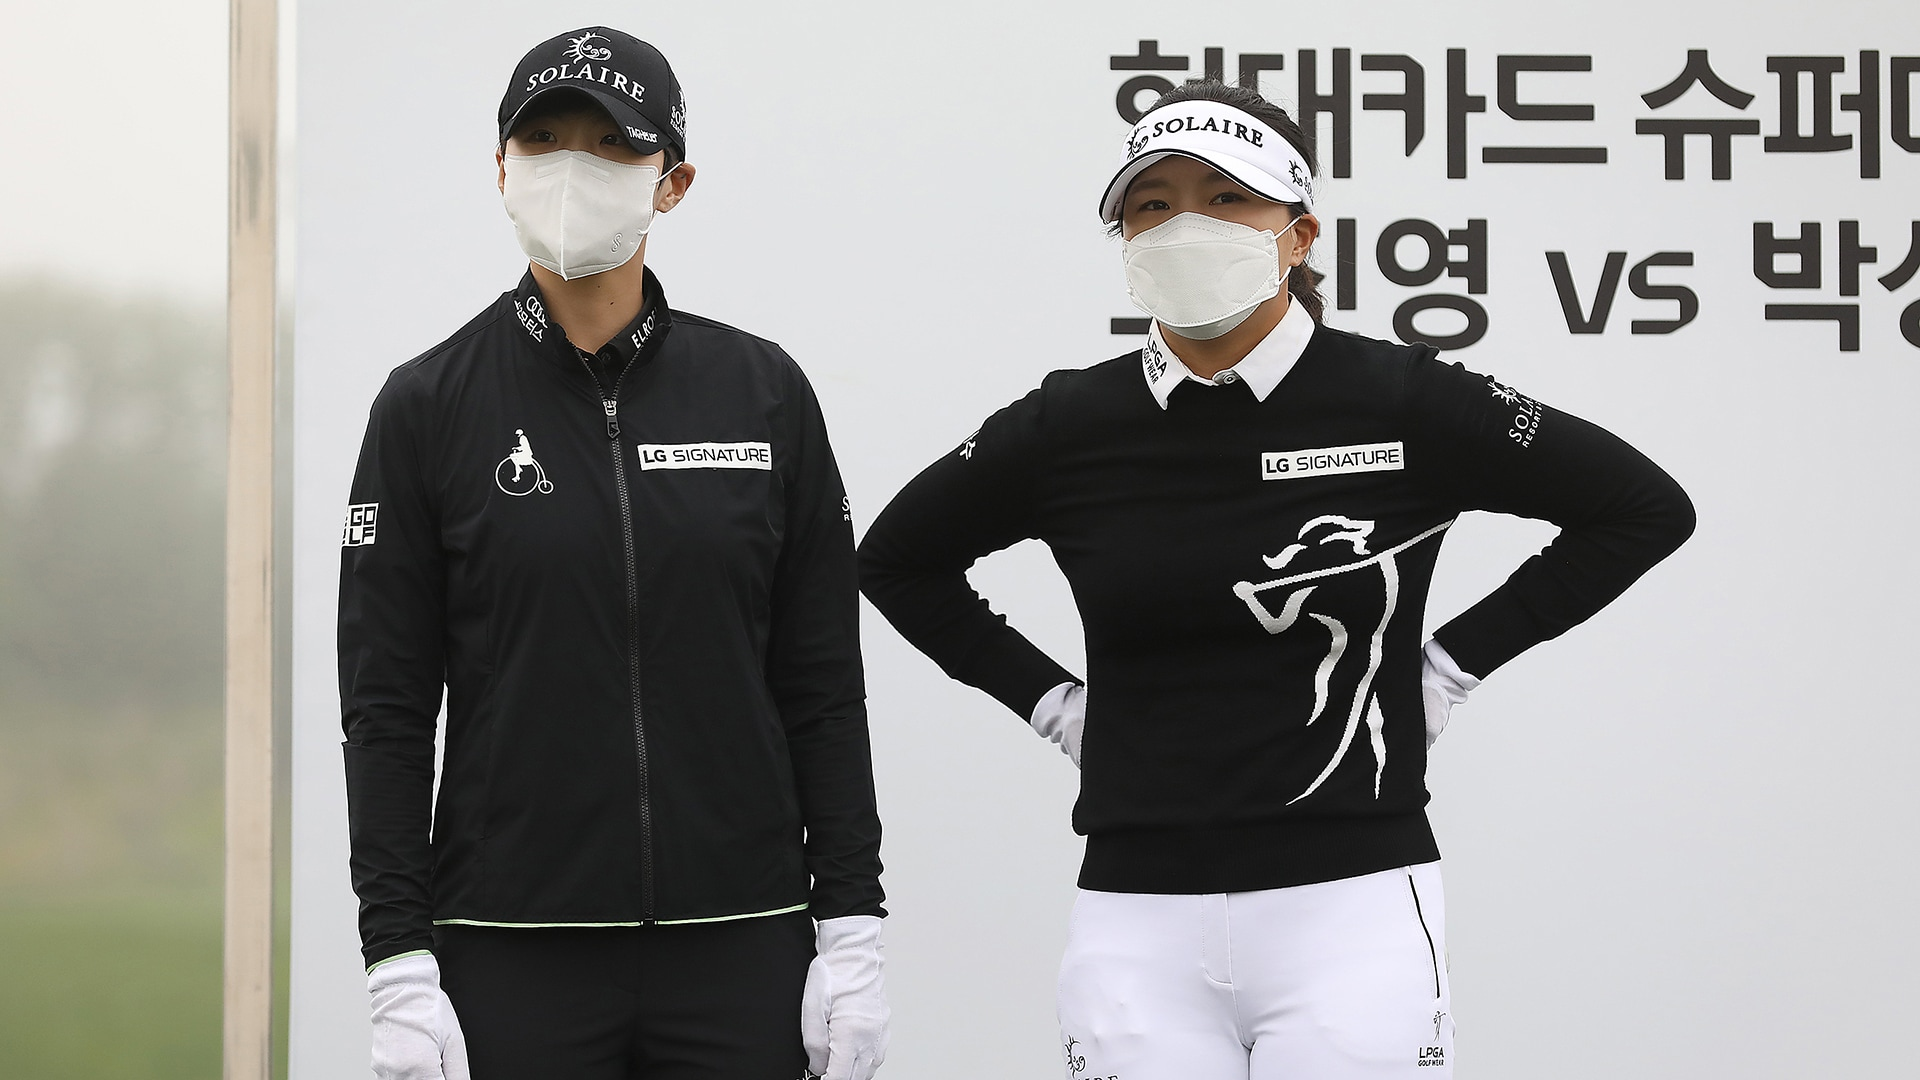 World Nos. 1 and 3, Jin Young Ko and Sung Hyun Park, split charity skins match